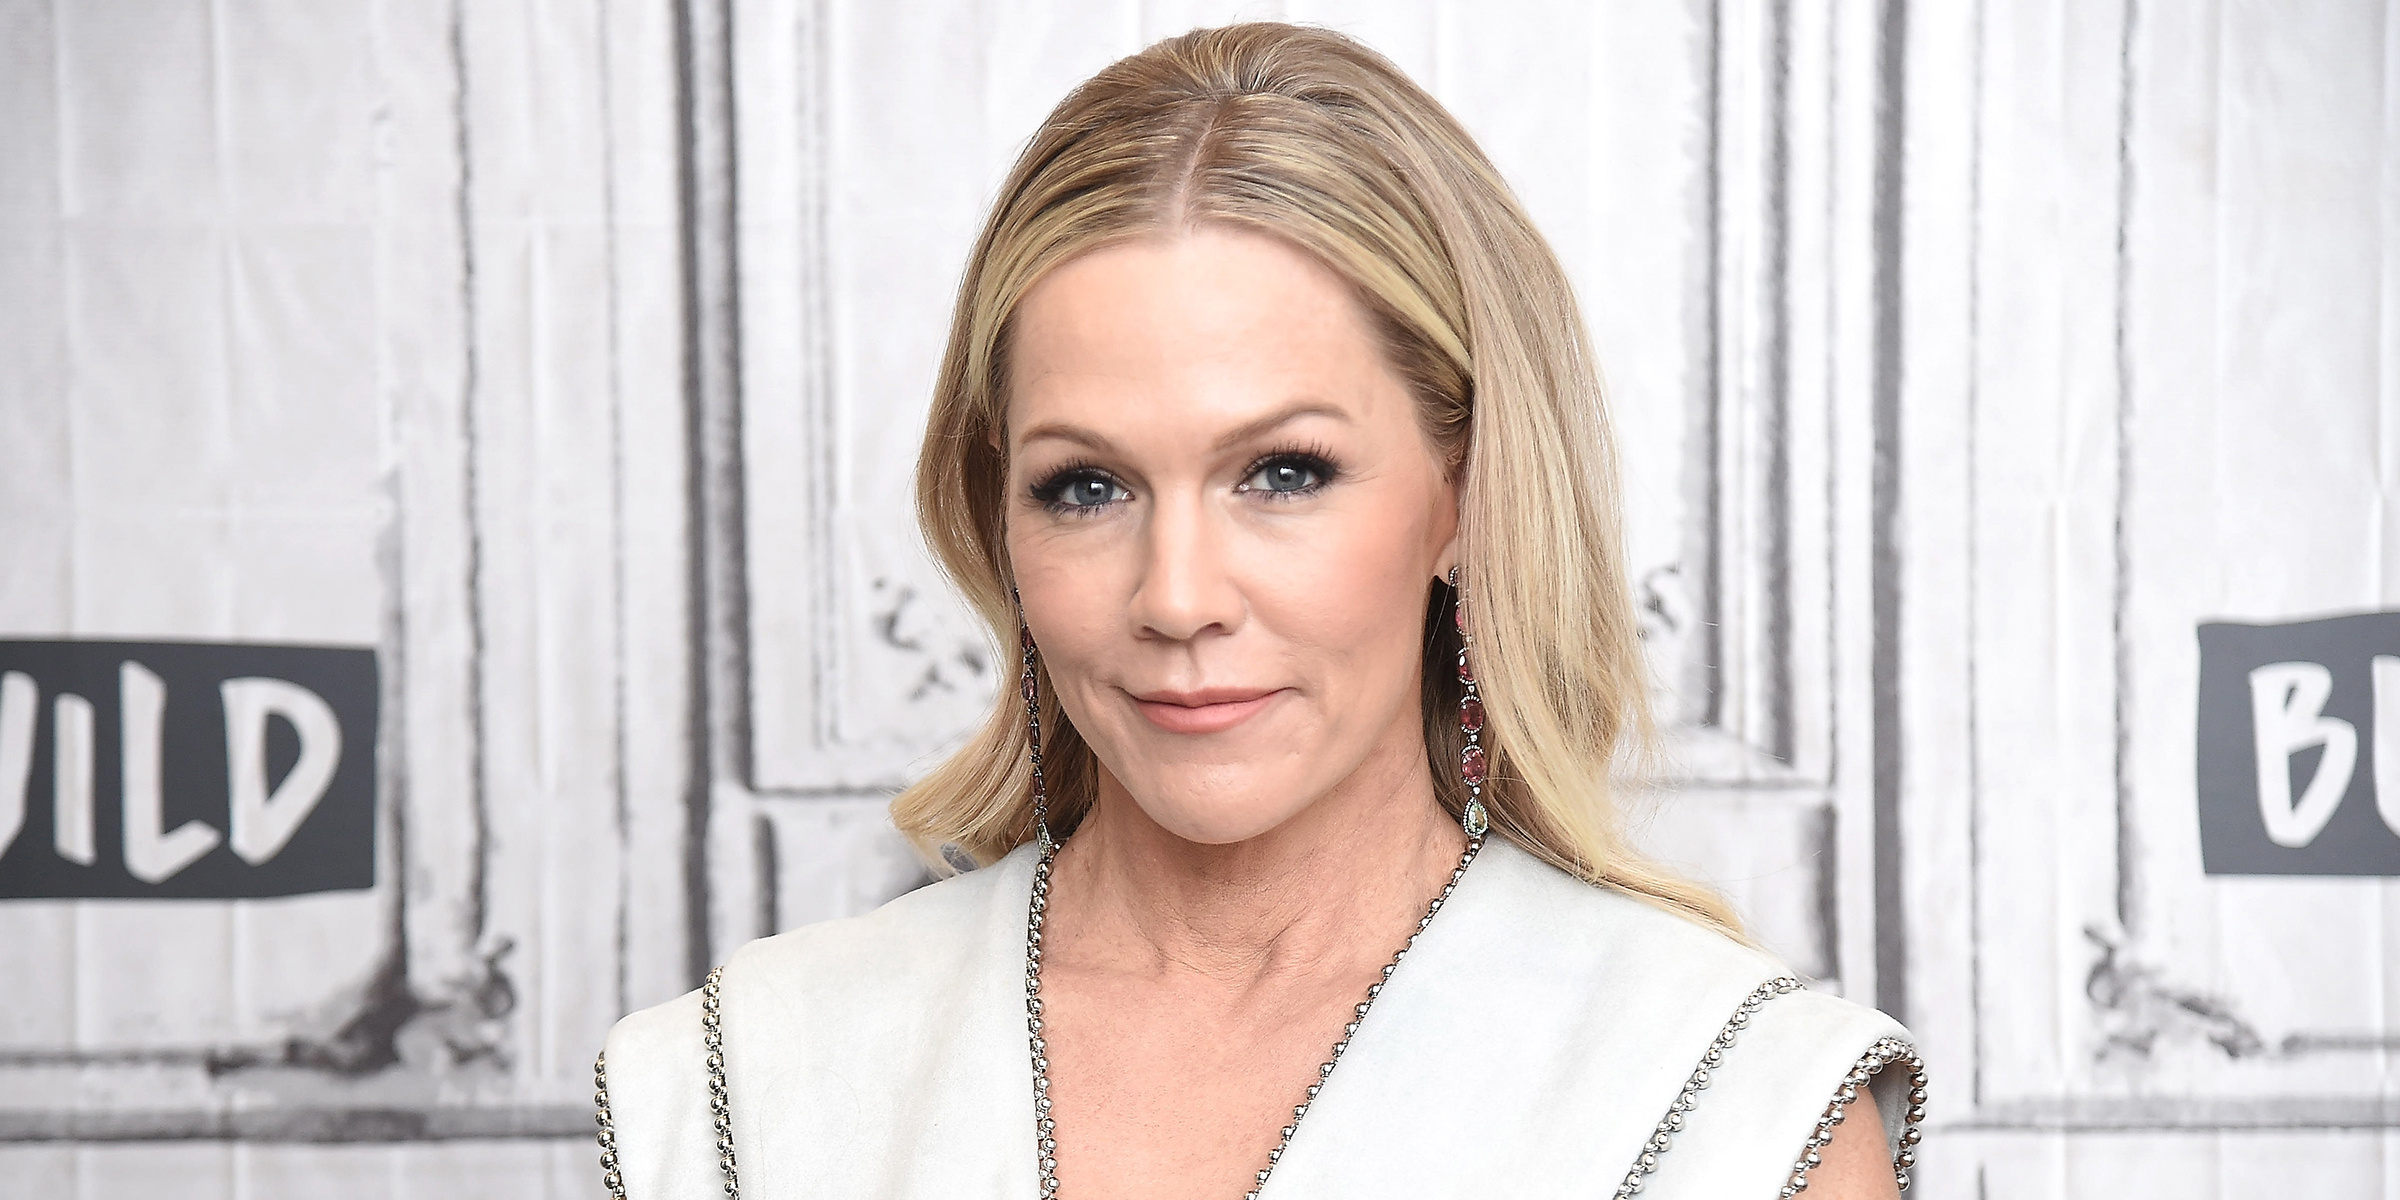 Jennie Garth and her daughter will co-star in upcoming Lifetime movie